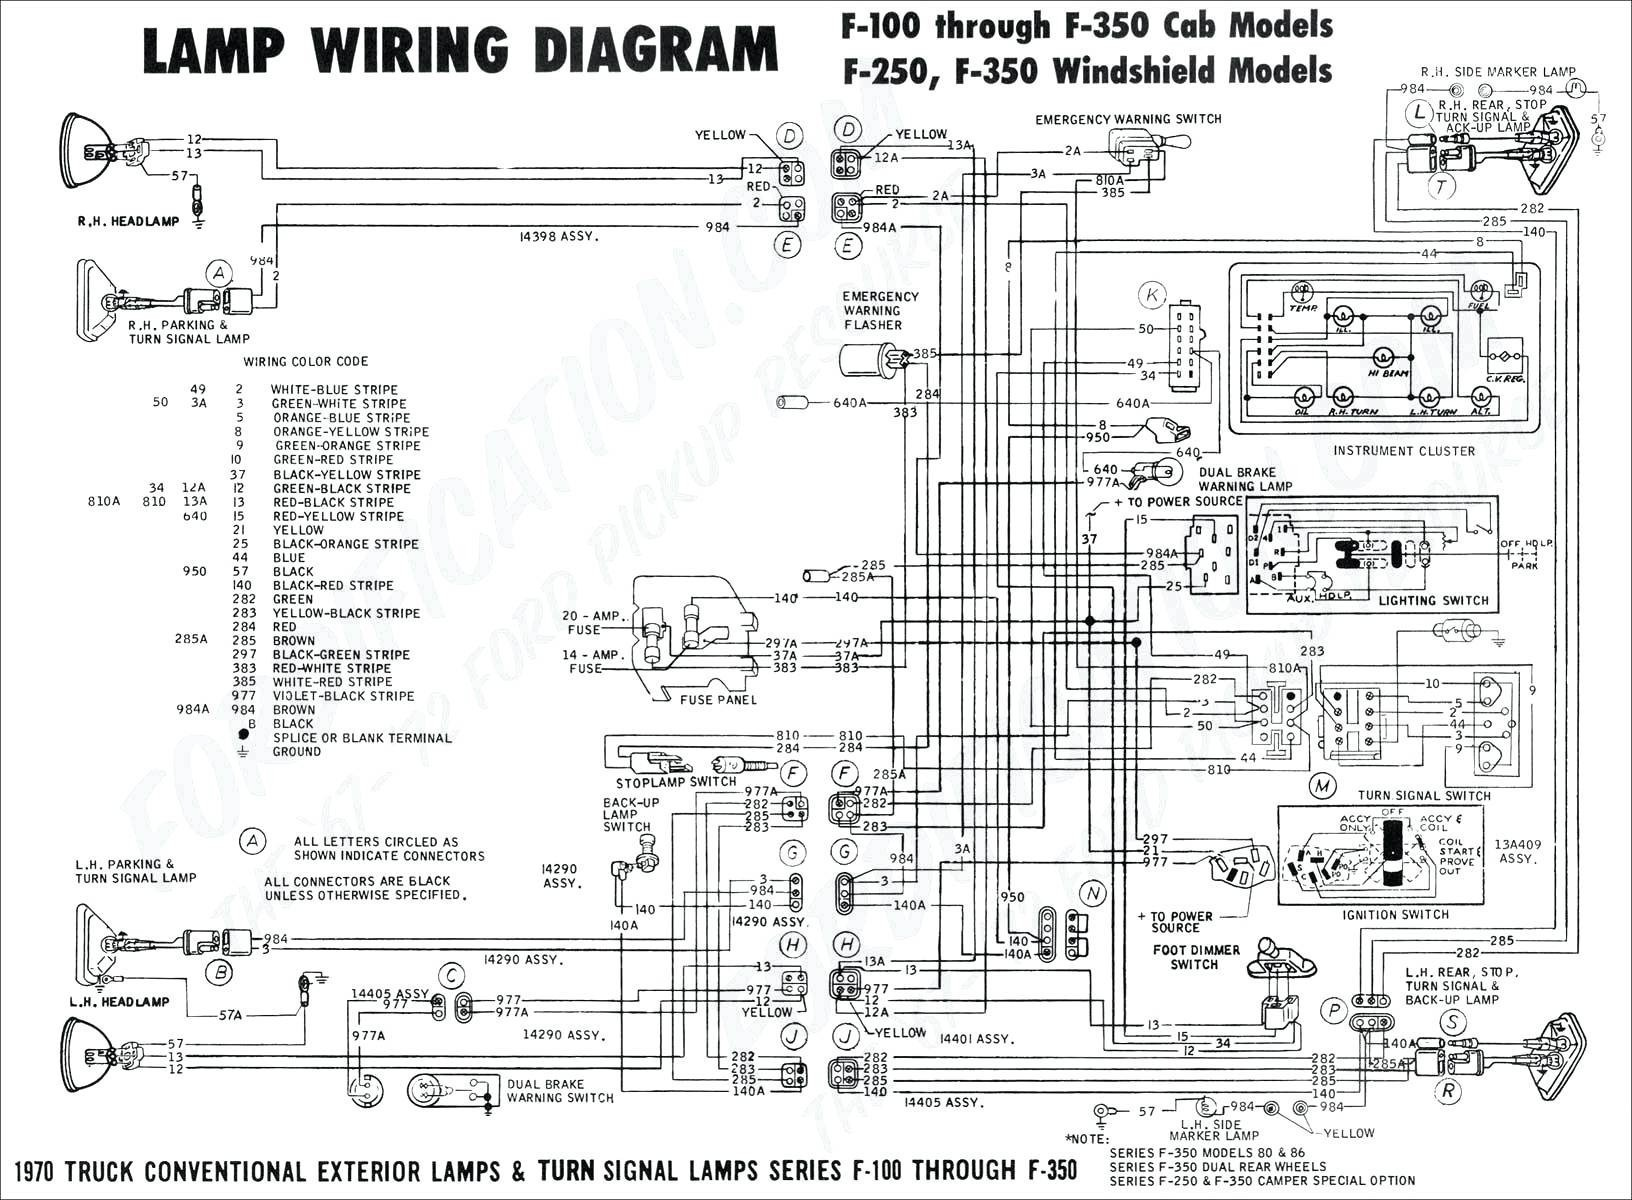 12v Switch Panel Wiring Diagram Fuse Diagram Besides Boat Wiring Fuse Panel Diagram Besides Basic Of 12v Switch Panel Wiring Diagram